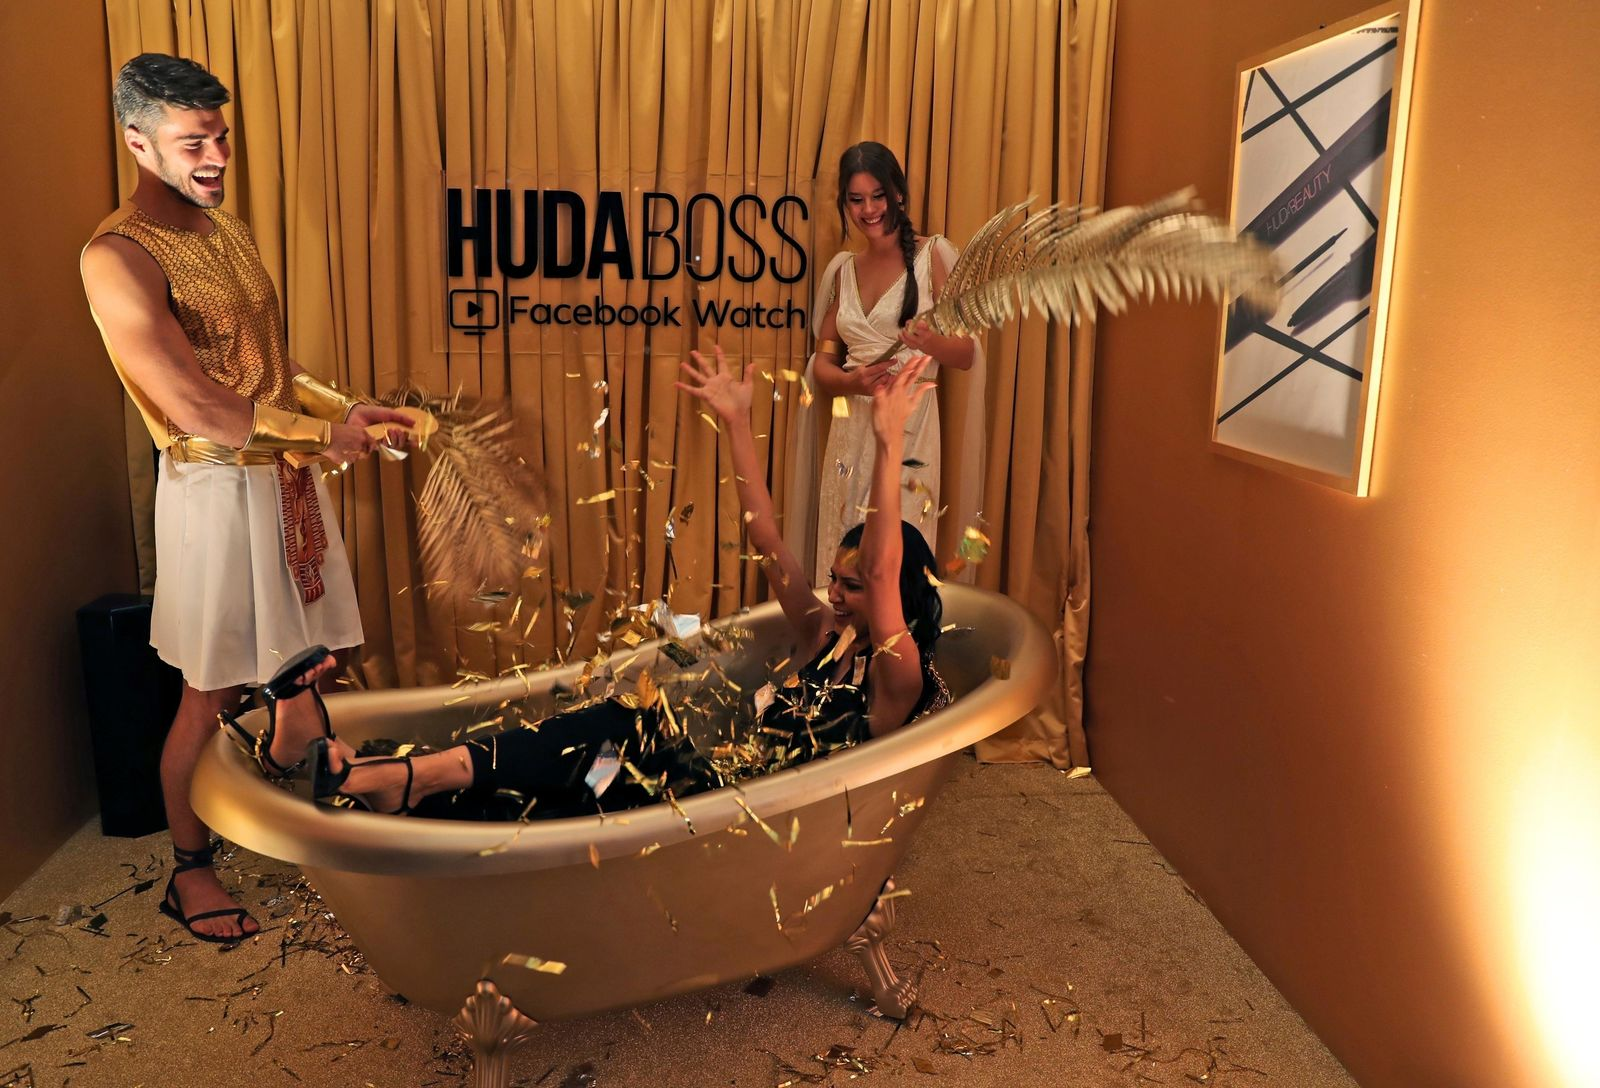 A guest enjoys at the Huda Boss Facebook Watch screening celebration in Dubai, United Arab Emirates, Wednesday, Oct. 9, 2019. (AP Photo/Kamran Jebreili)